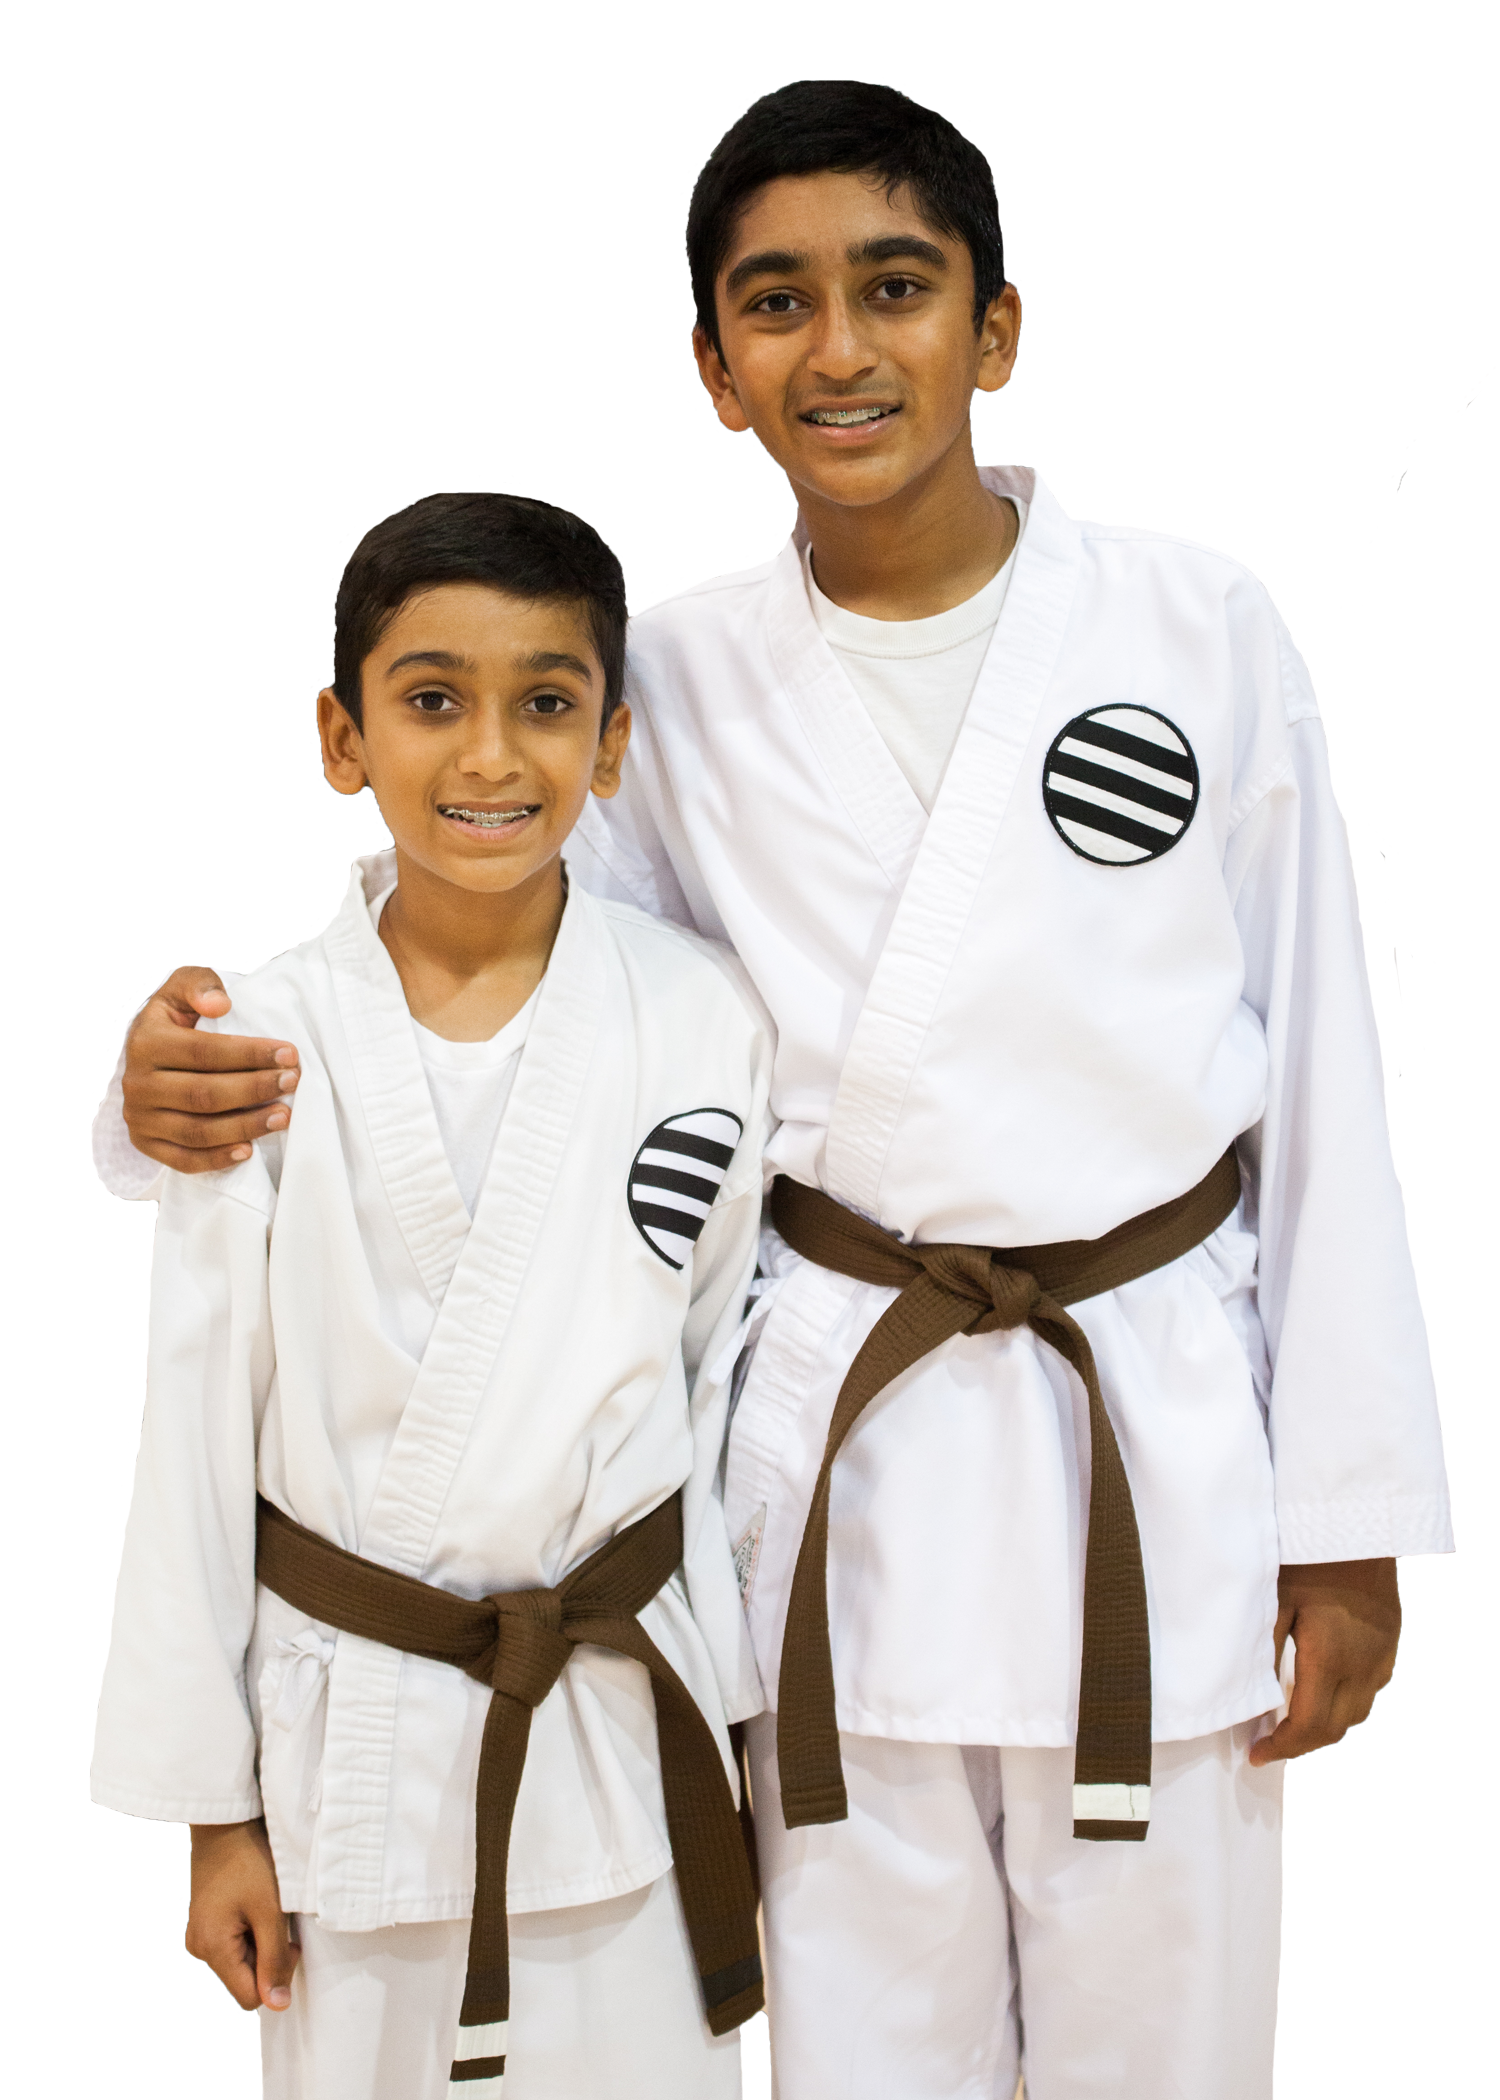 Karate Classes That Won't Break The Bank - Our karate program is unique. With over 70 locations in the Chicago suburbs, Illinois Shotokan Karate teaches classes at safe, Park District locations. This allows us to keep our prices lower than your average store front karate dojo. No contracts. no Monthly fees. Just karate classes!Learn more ➝